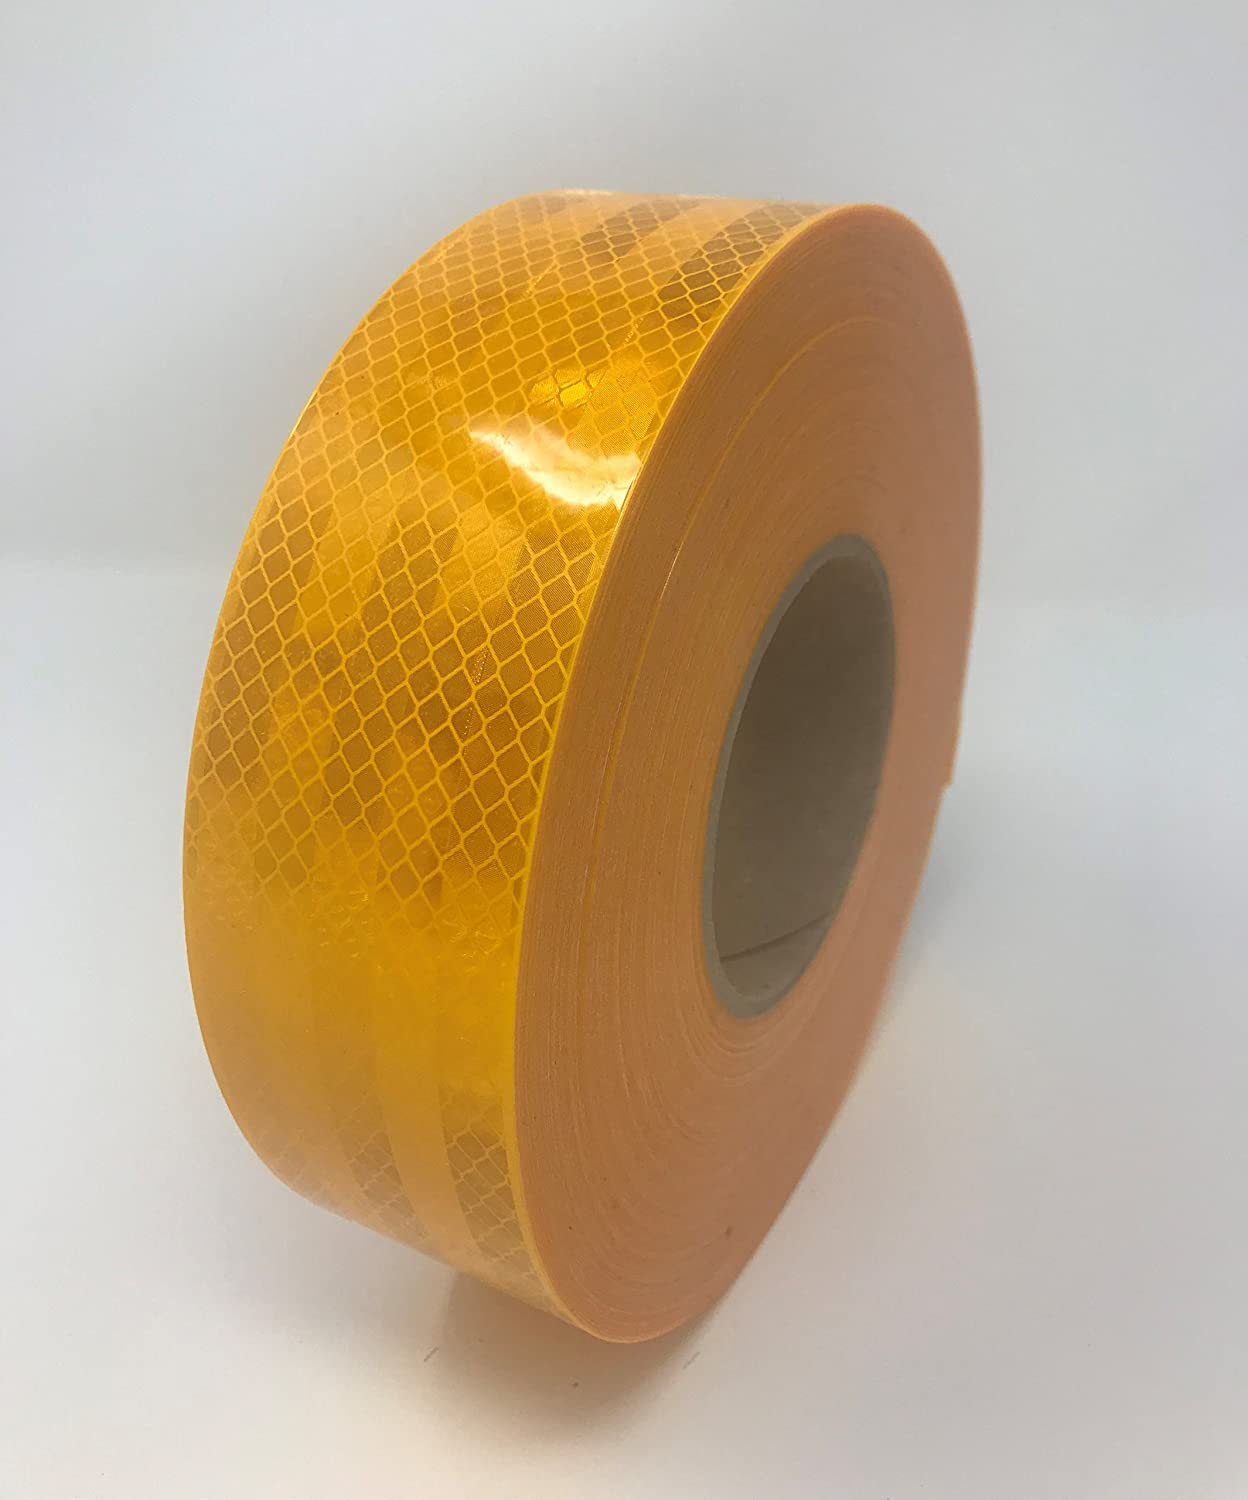 Safe Way Traction 2 x 12 Roll 3M Diamond Grade Conspicuity School Bus Yellow Auto Truck Trailer Reflective Safety Tape 983-71